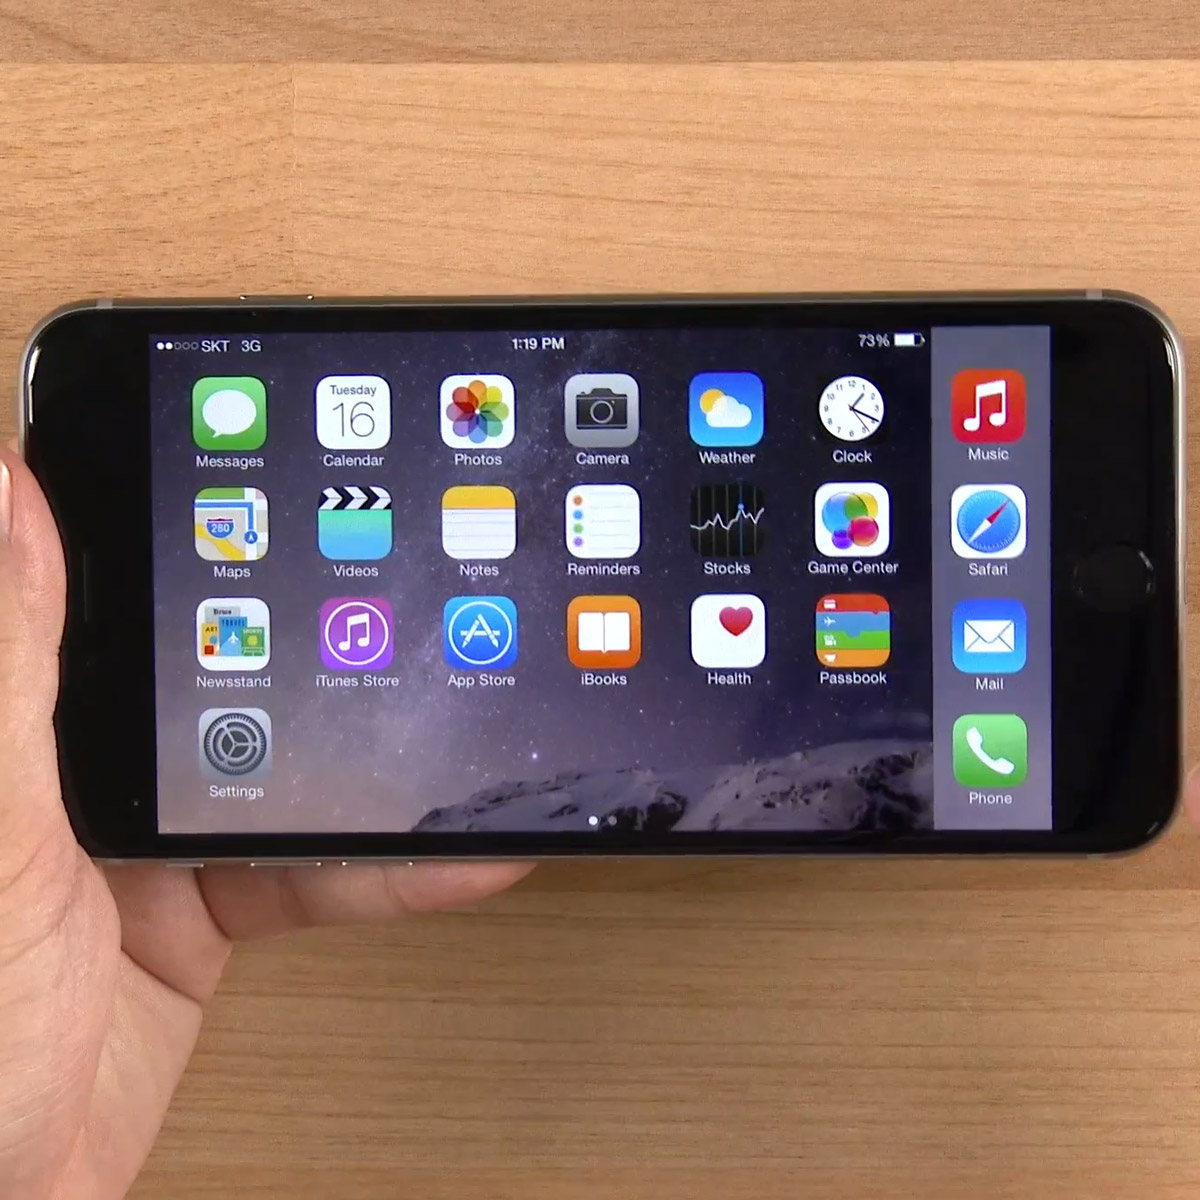 Hands on Video of iPhone 6 Plus Demonstrates Landscape Mode